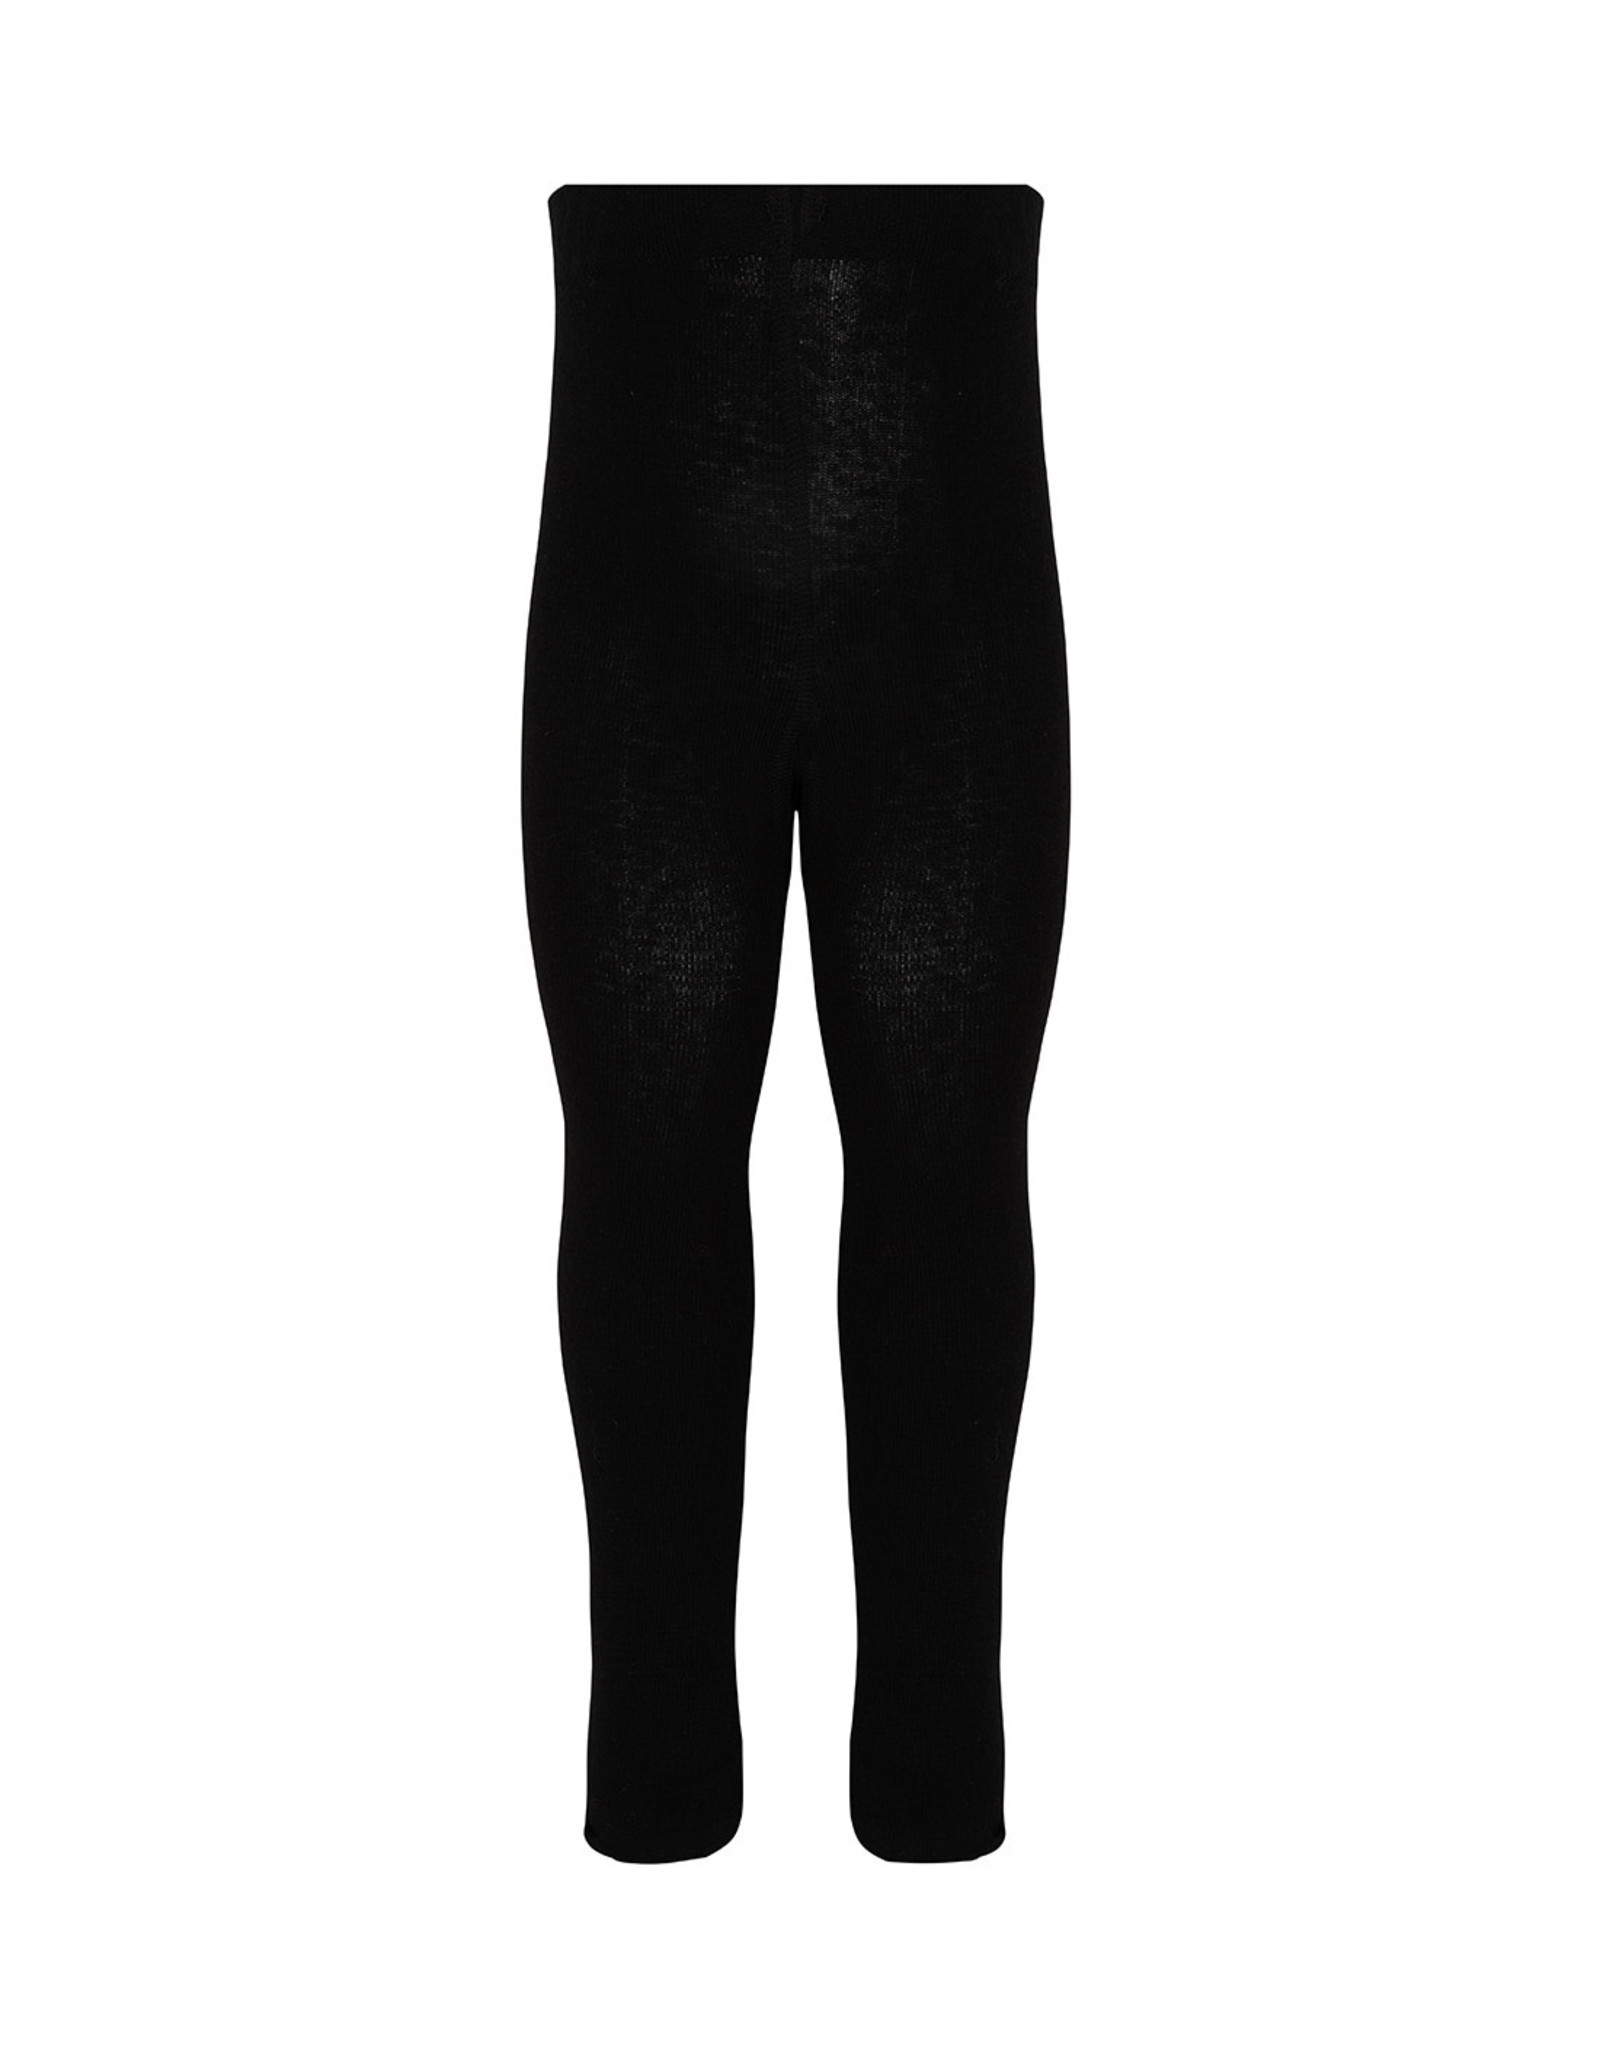 Daily7 Daily7 meisjes maillot Black